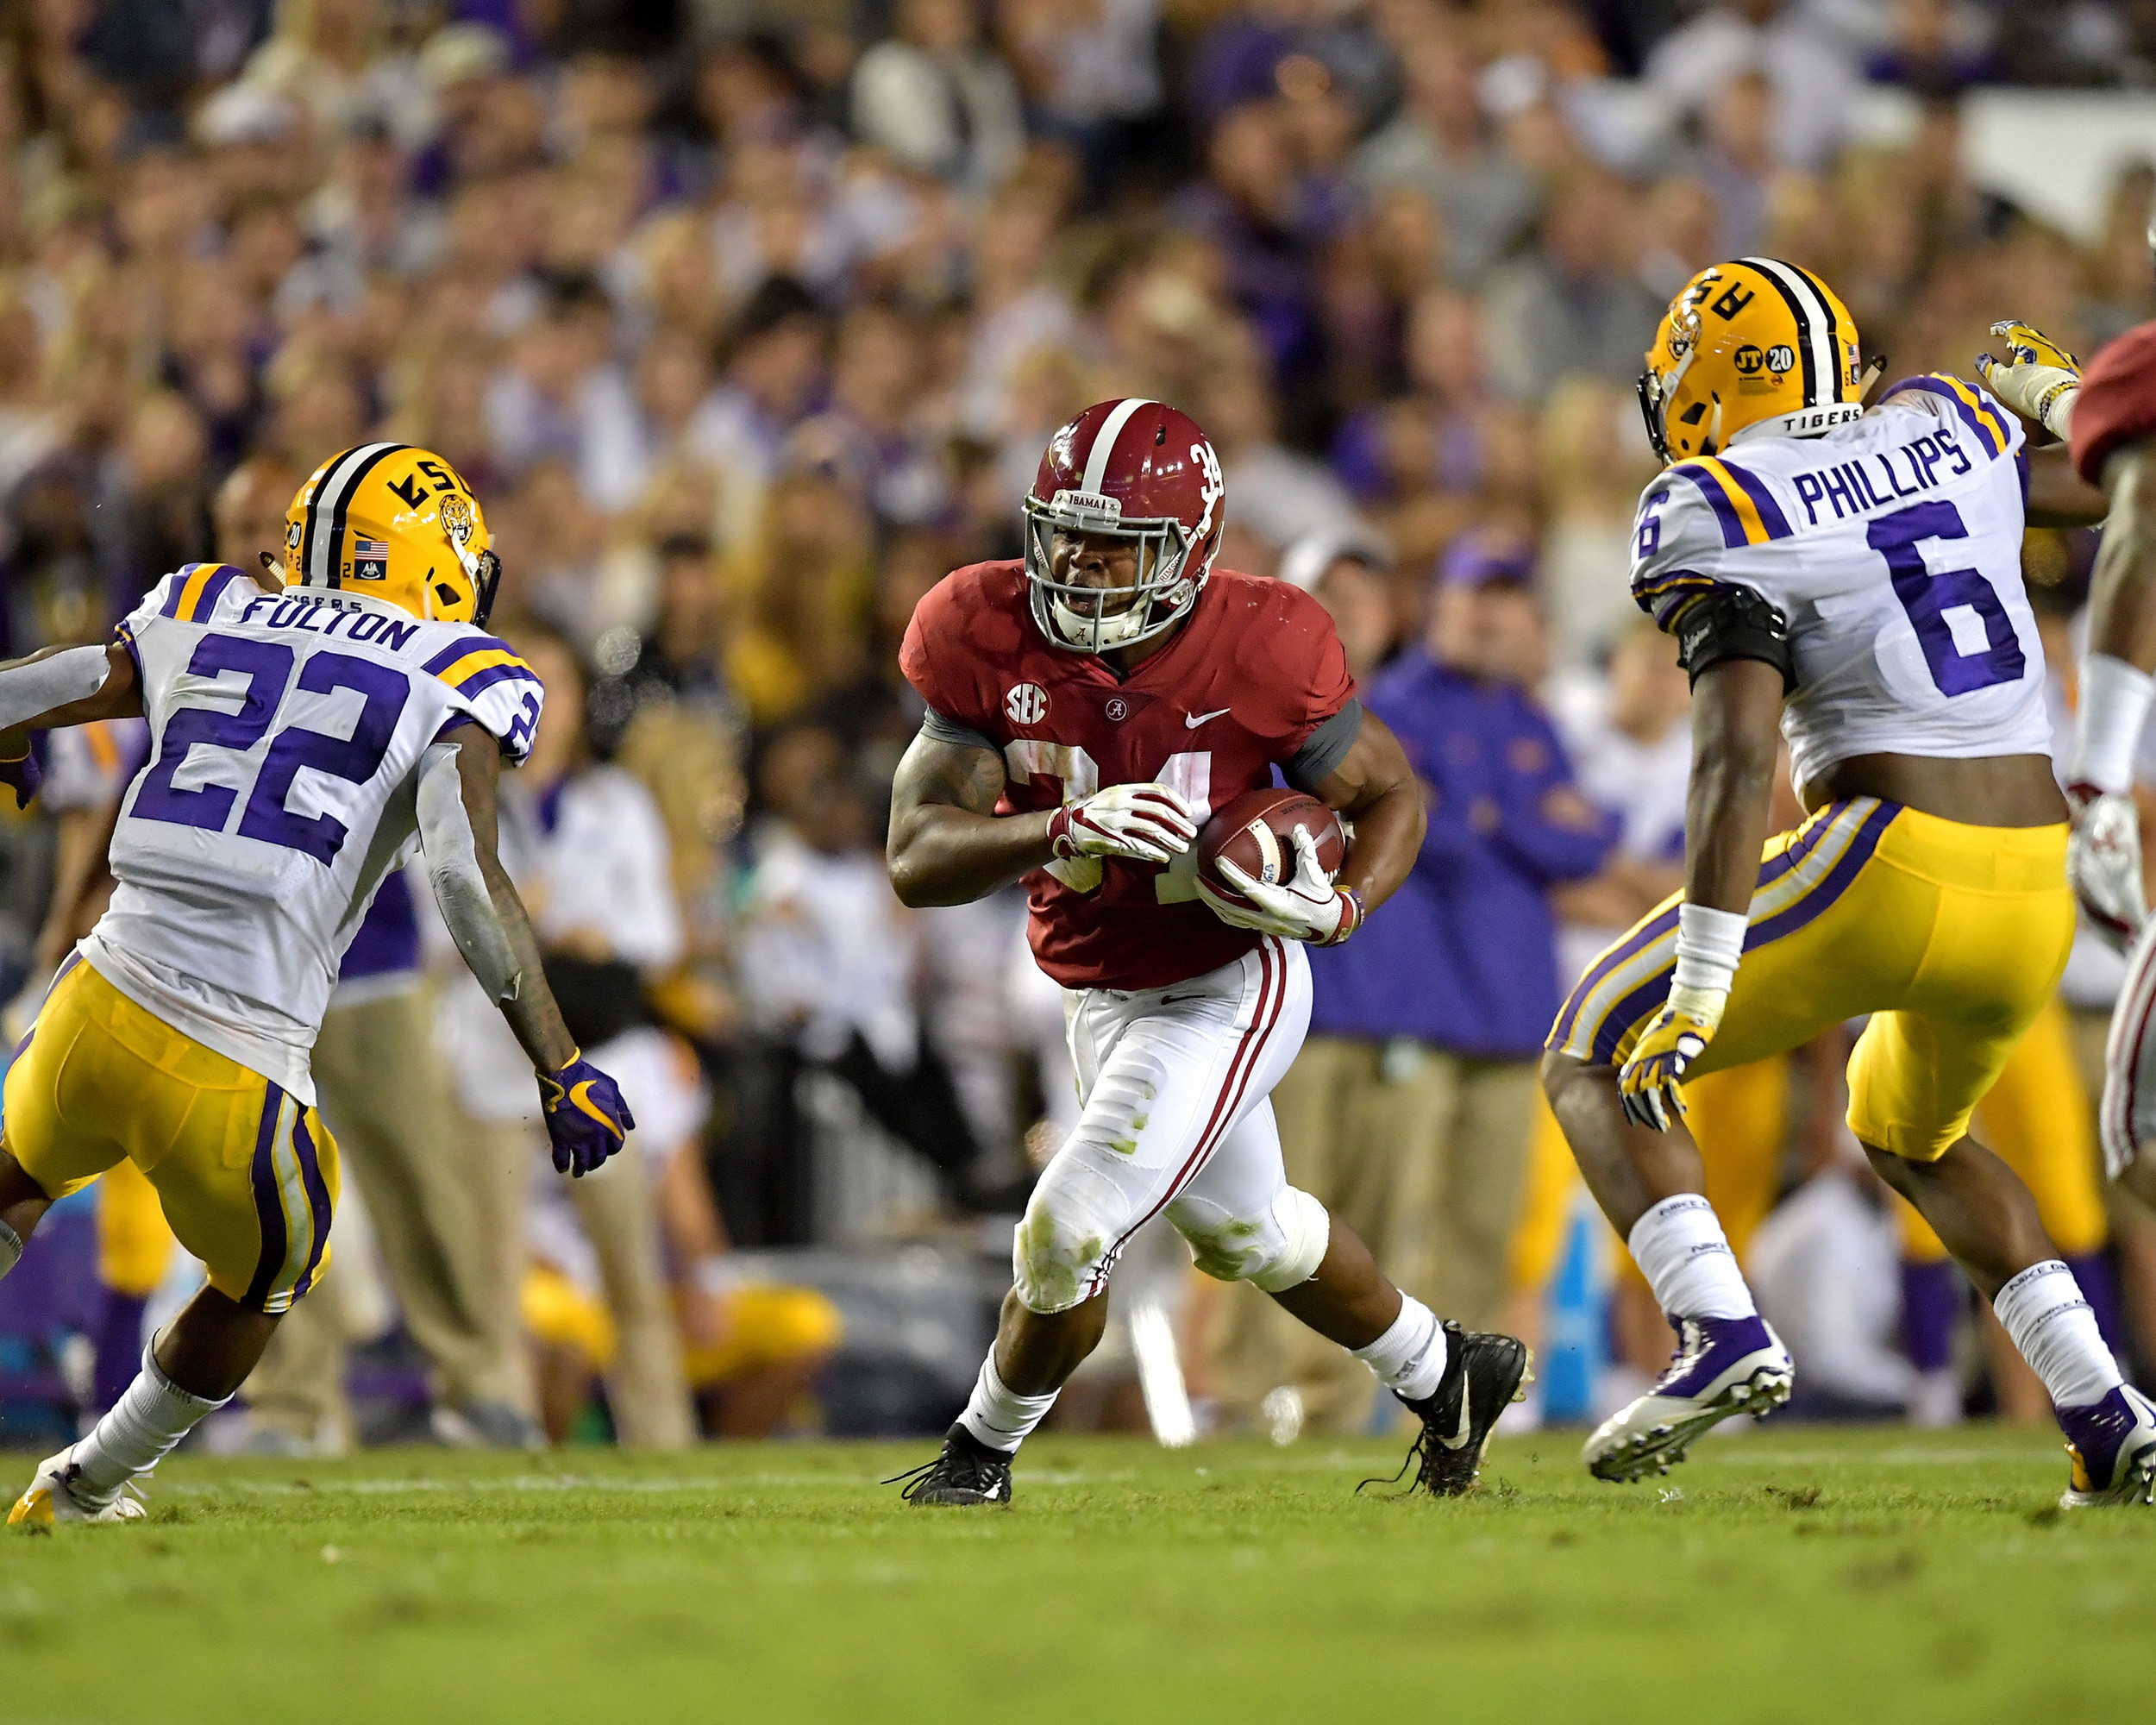 Alabama Crimson Tide running back Damien Harris (34) during the first half of an NCAA football game against the LSU Tigers Saturday, November 3, 2018, at Tiger Stadium in Baton Rouge, La. Alabama wins 29-0. (Photo by Lee Walls)